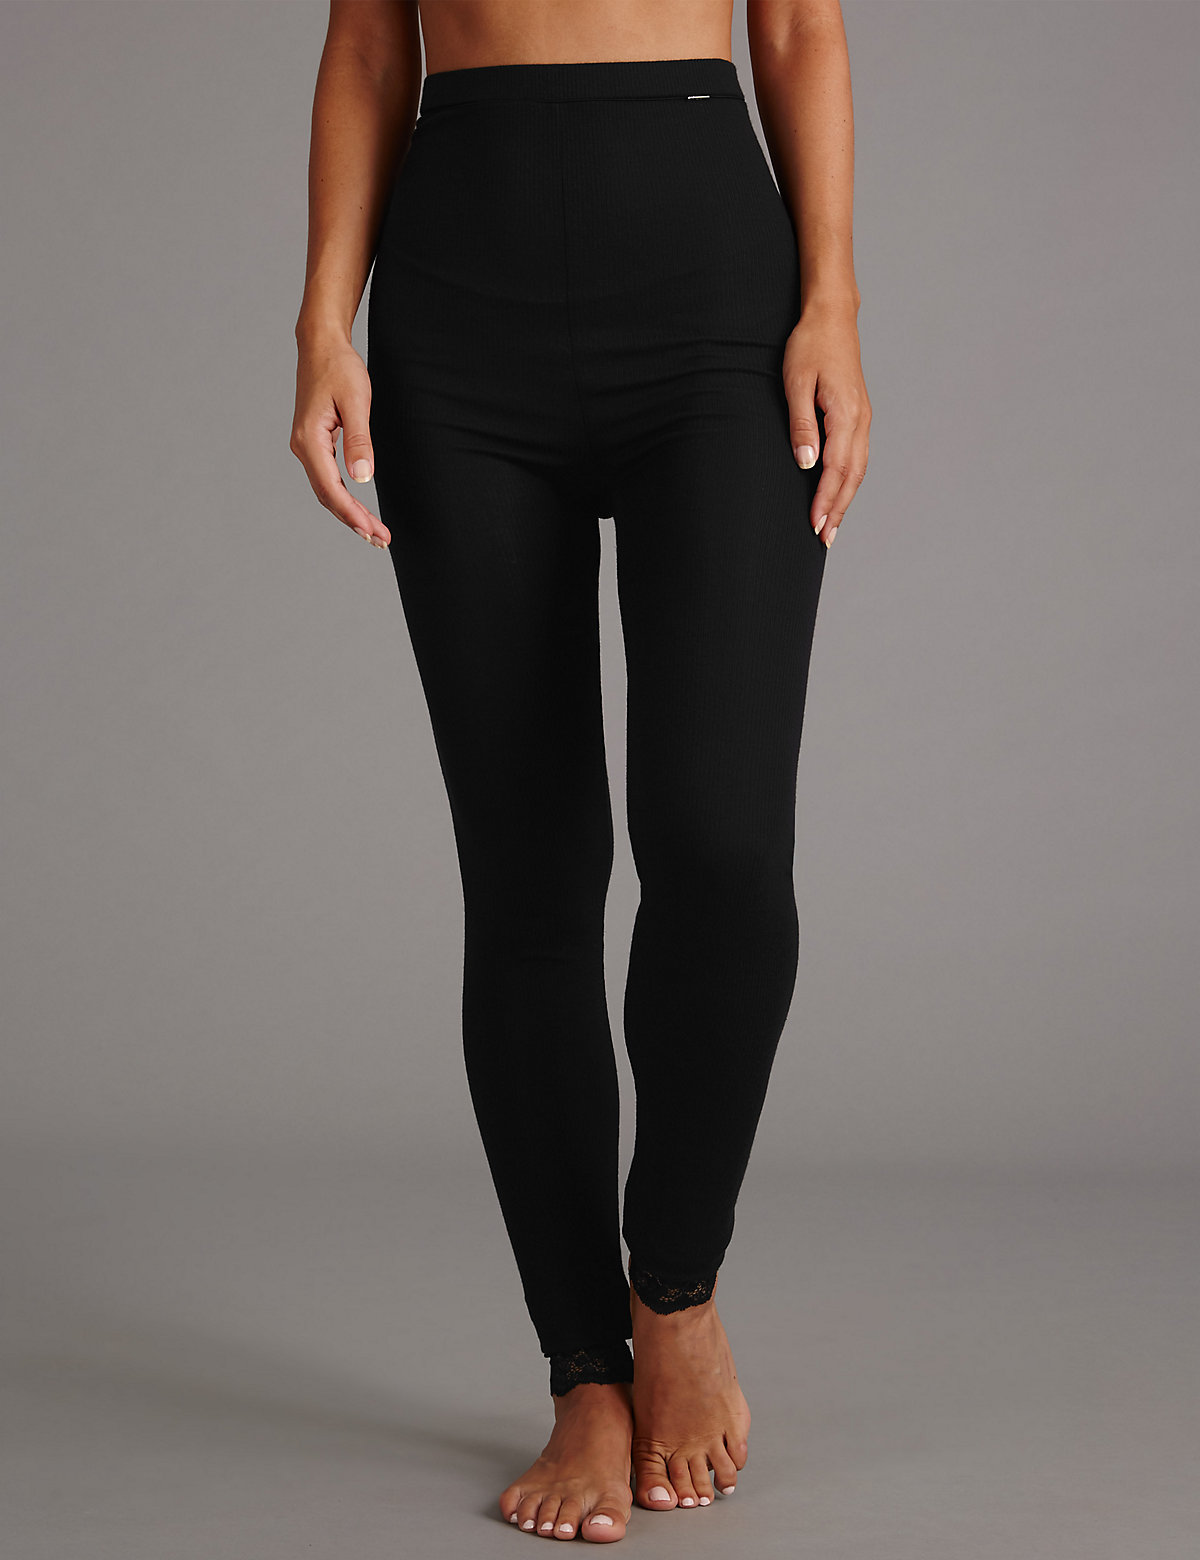 Autograph Silk Modal Thermal Leggings Marks and Spencer P60083673